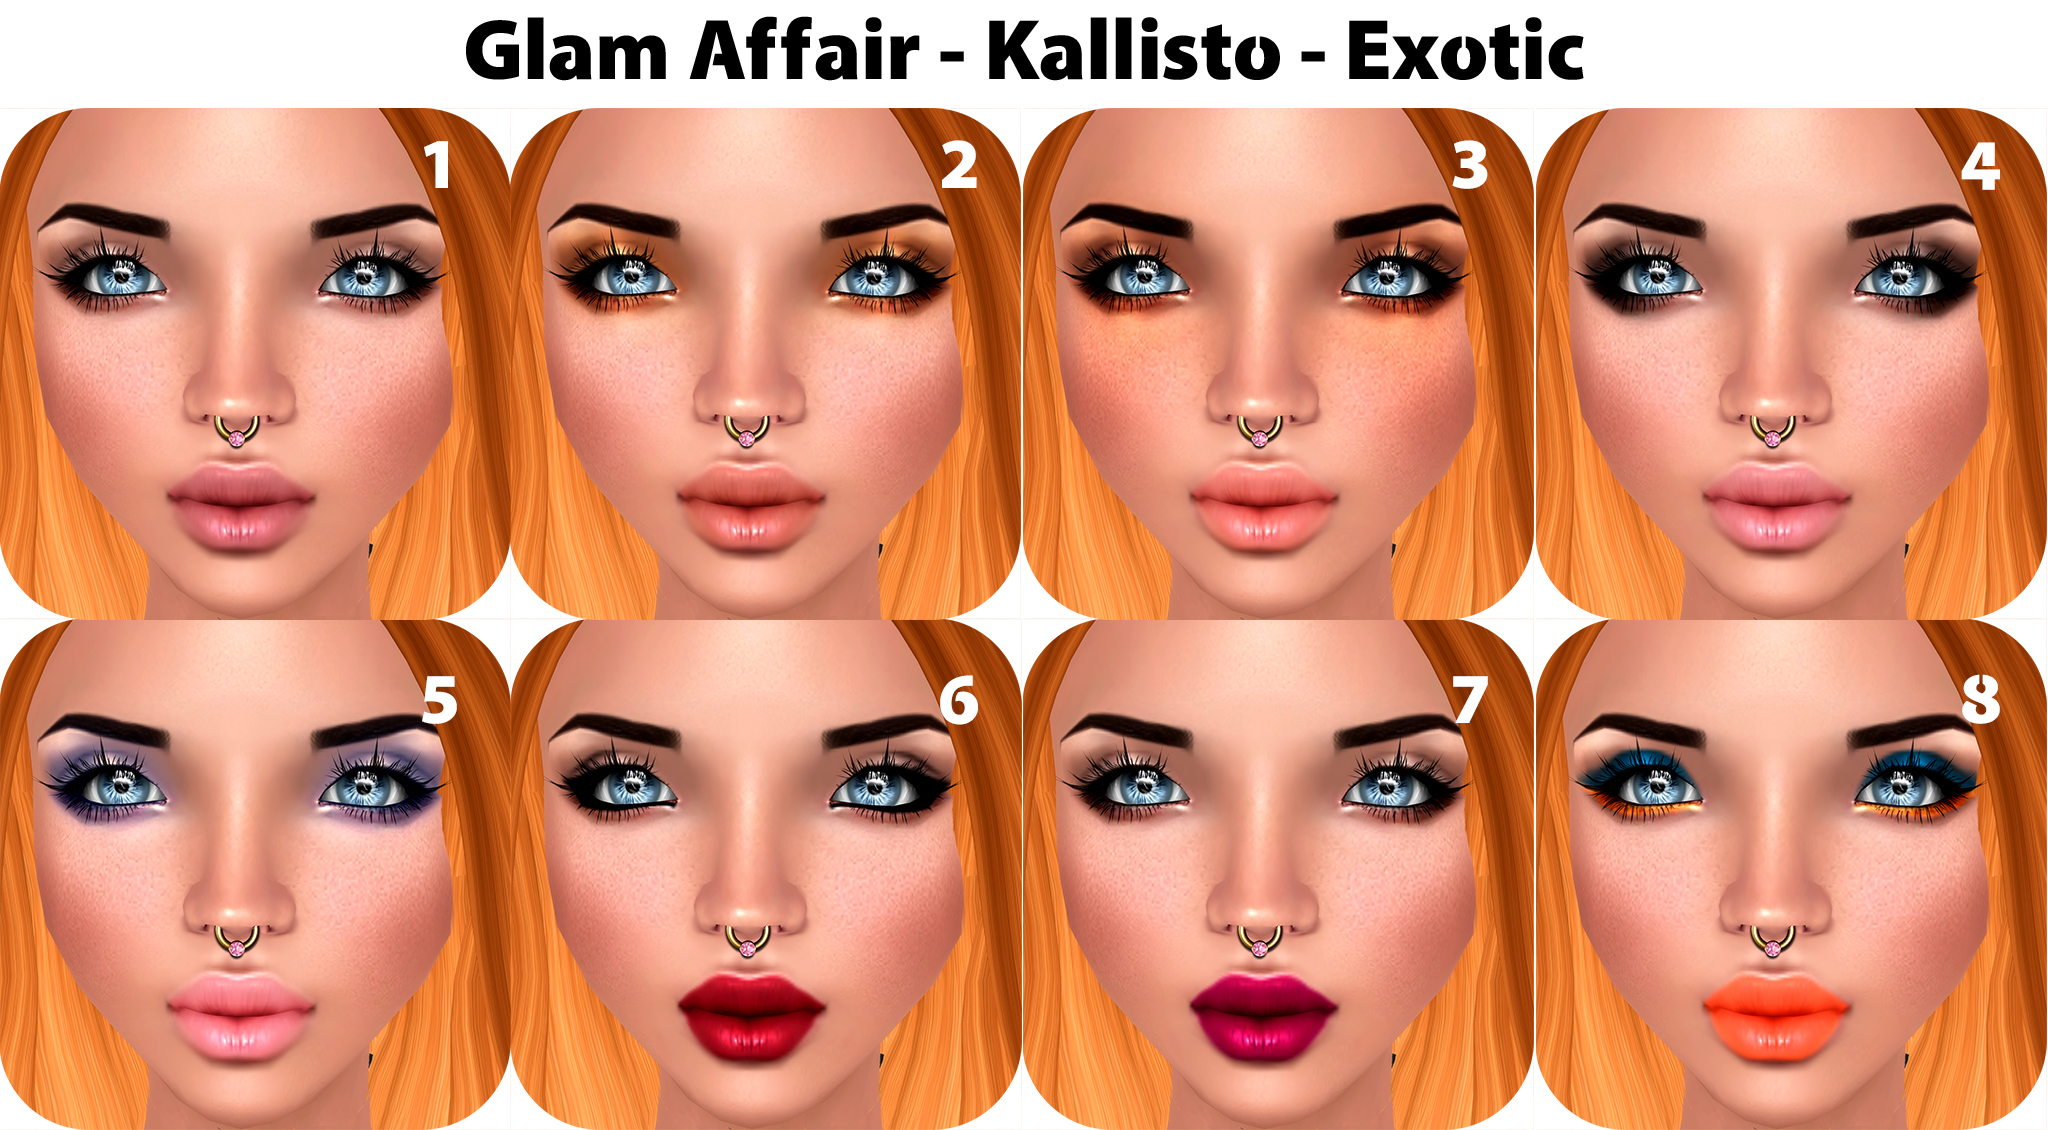 Glam Affair Kallisto Exotic for C88